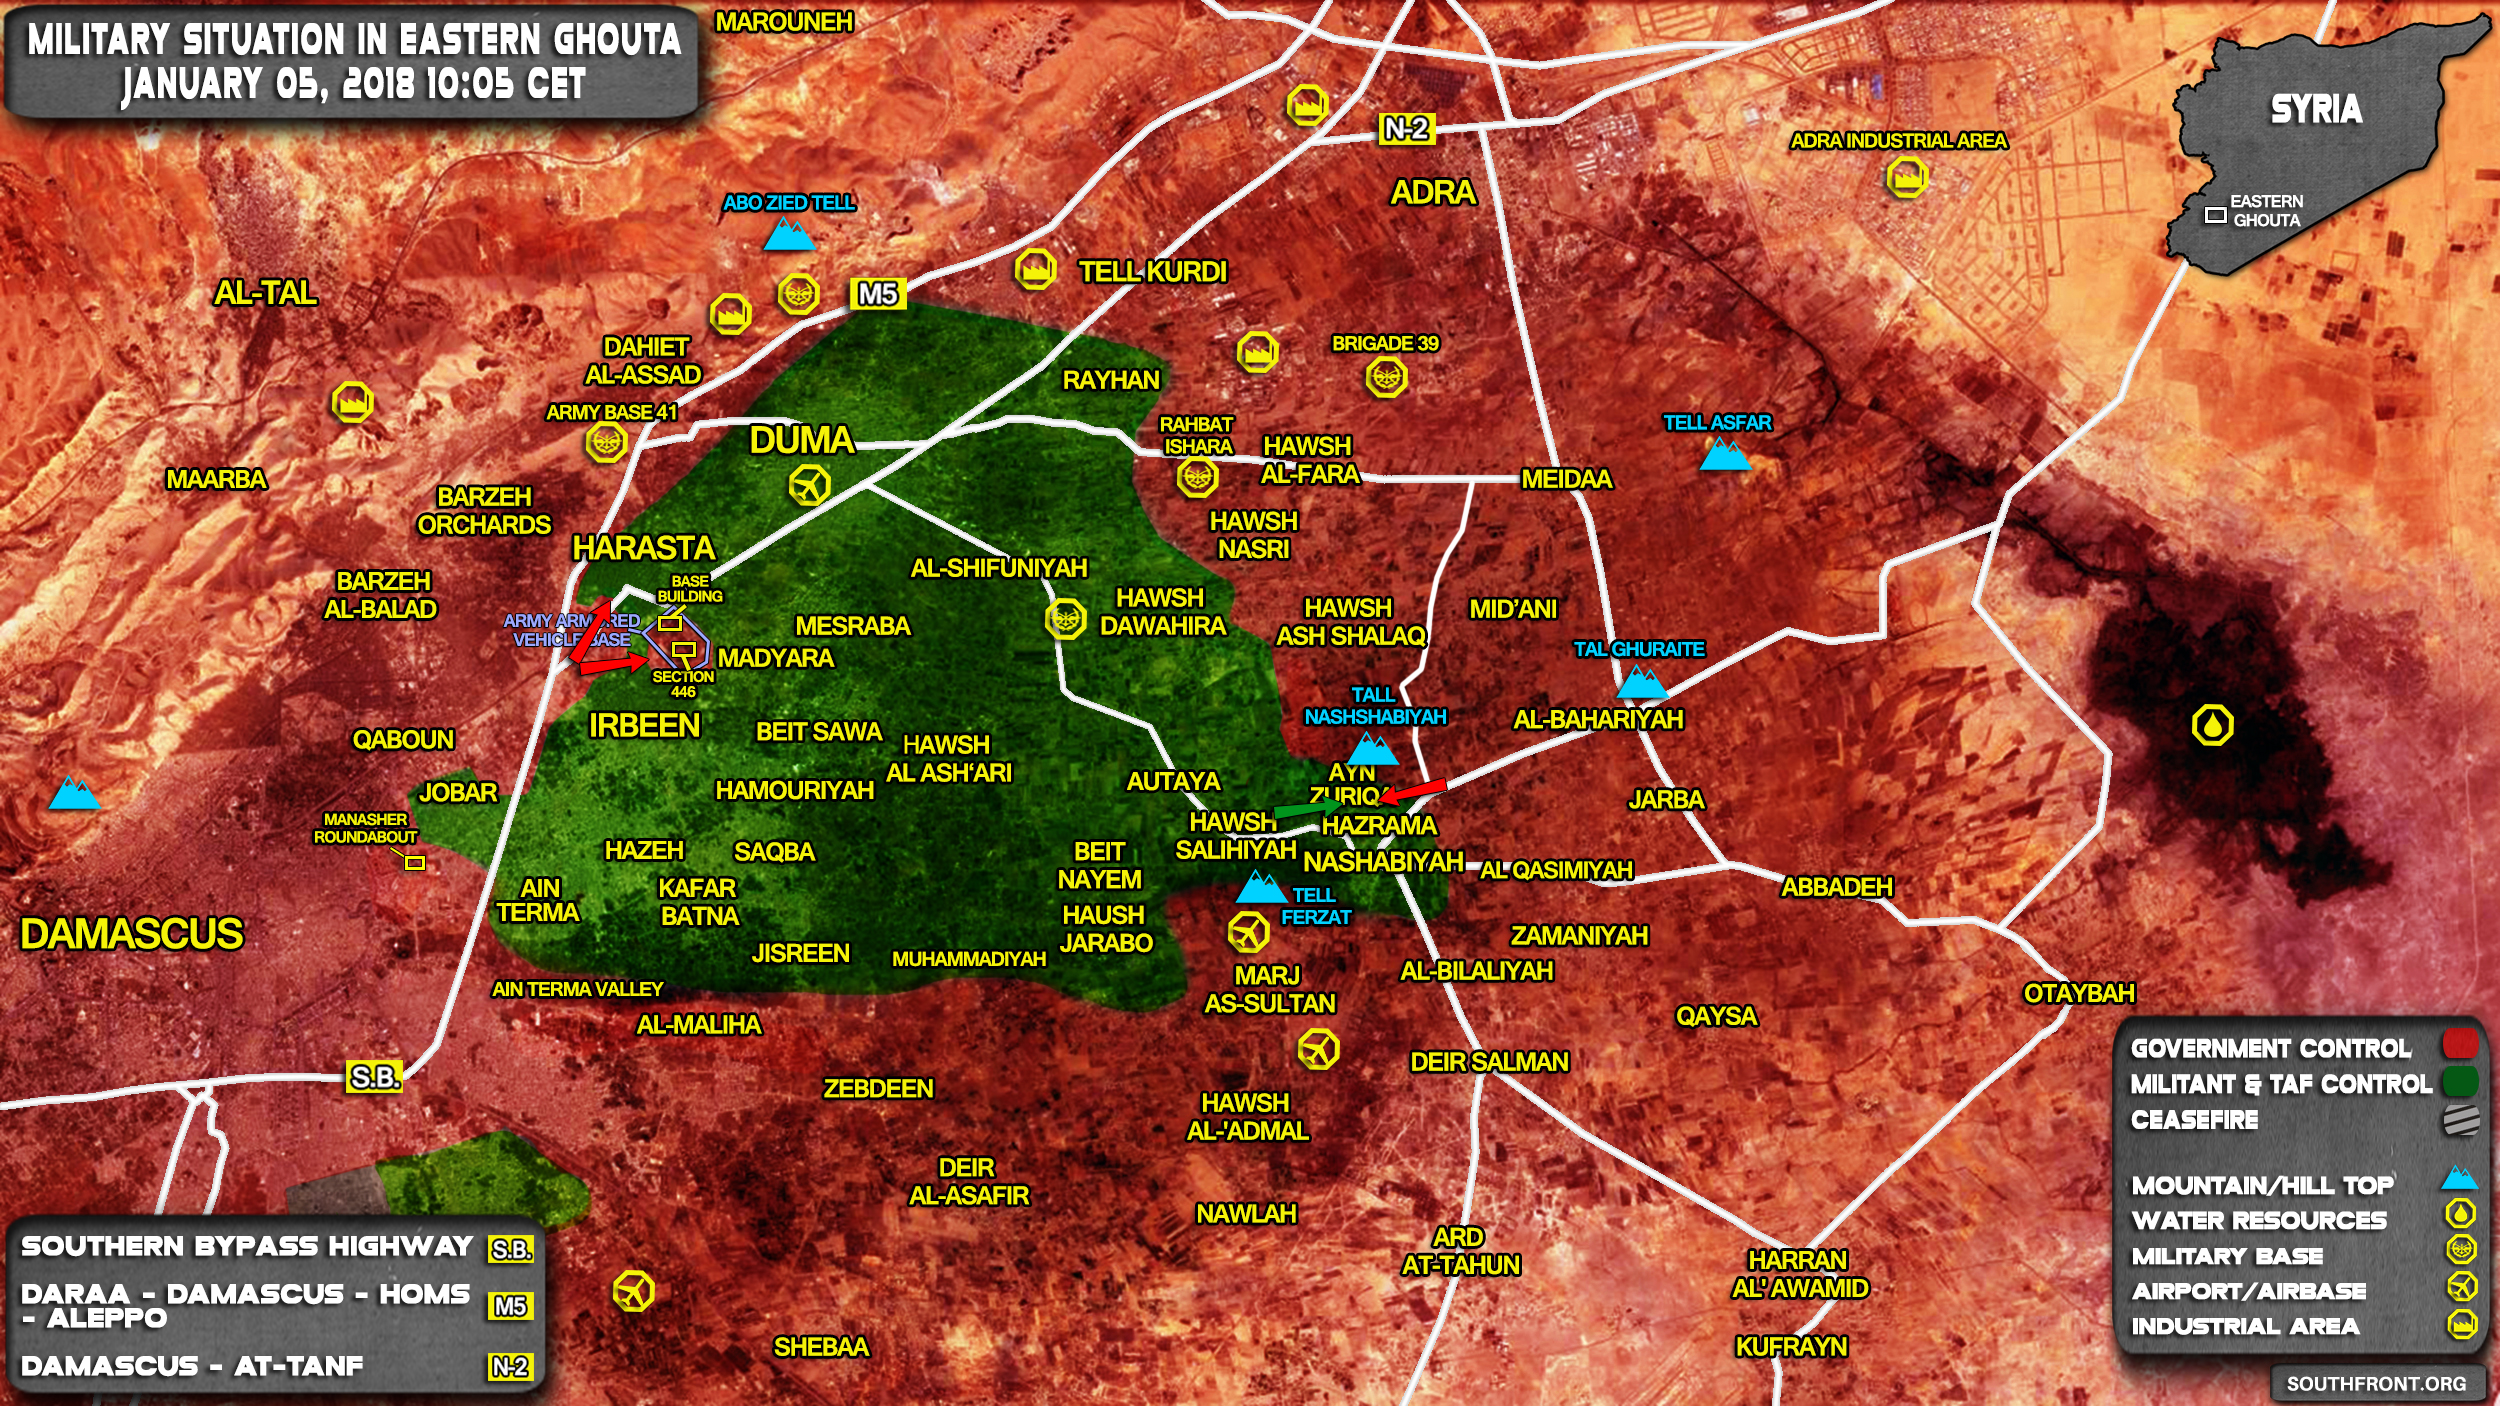 05jan_eastern_ghouta_Syria_War_Map.jpg?x